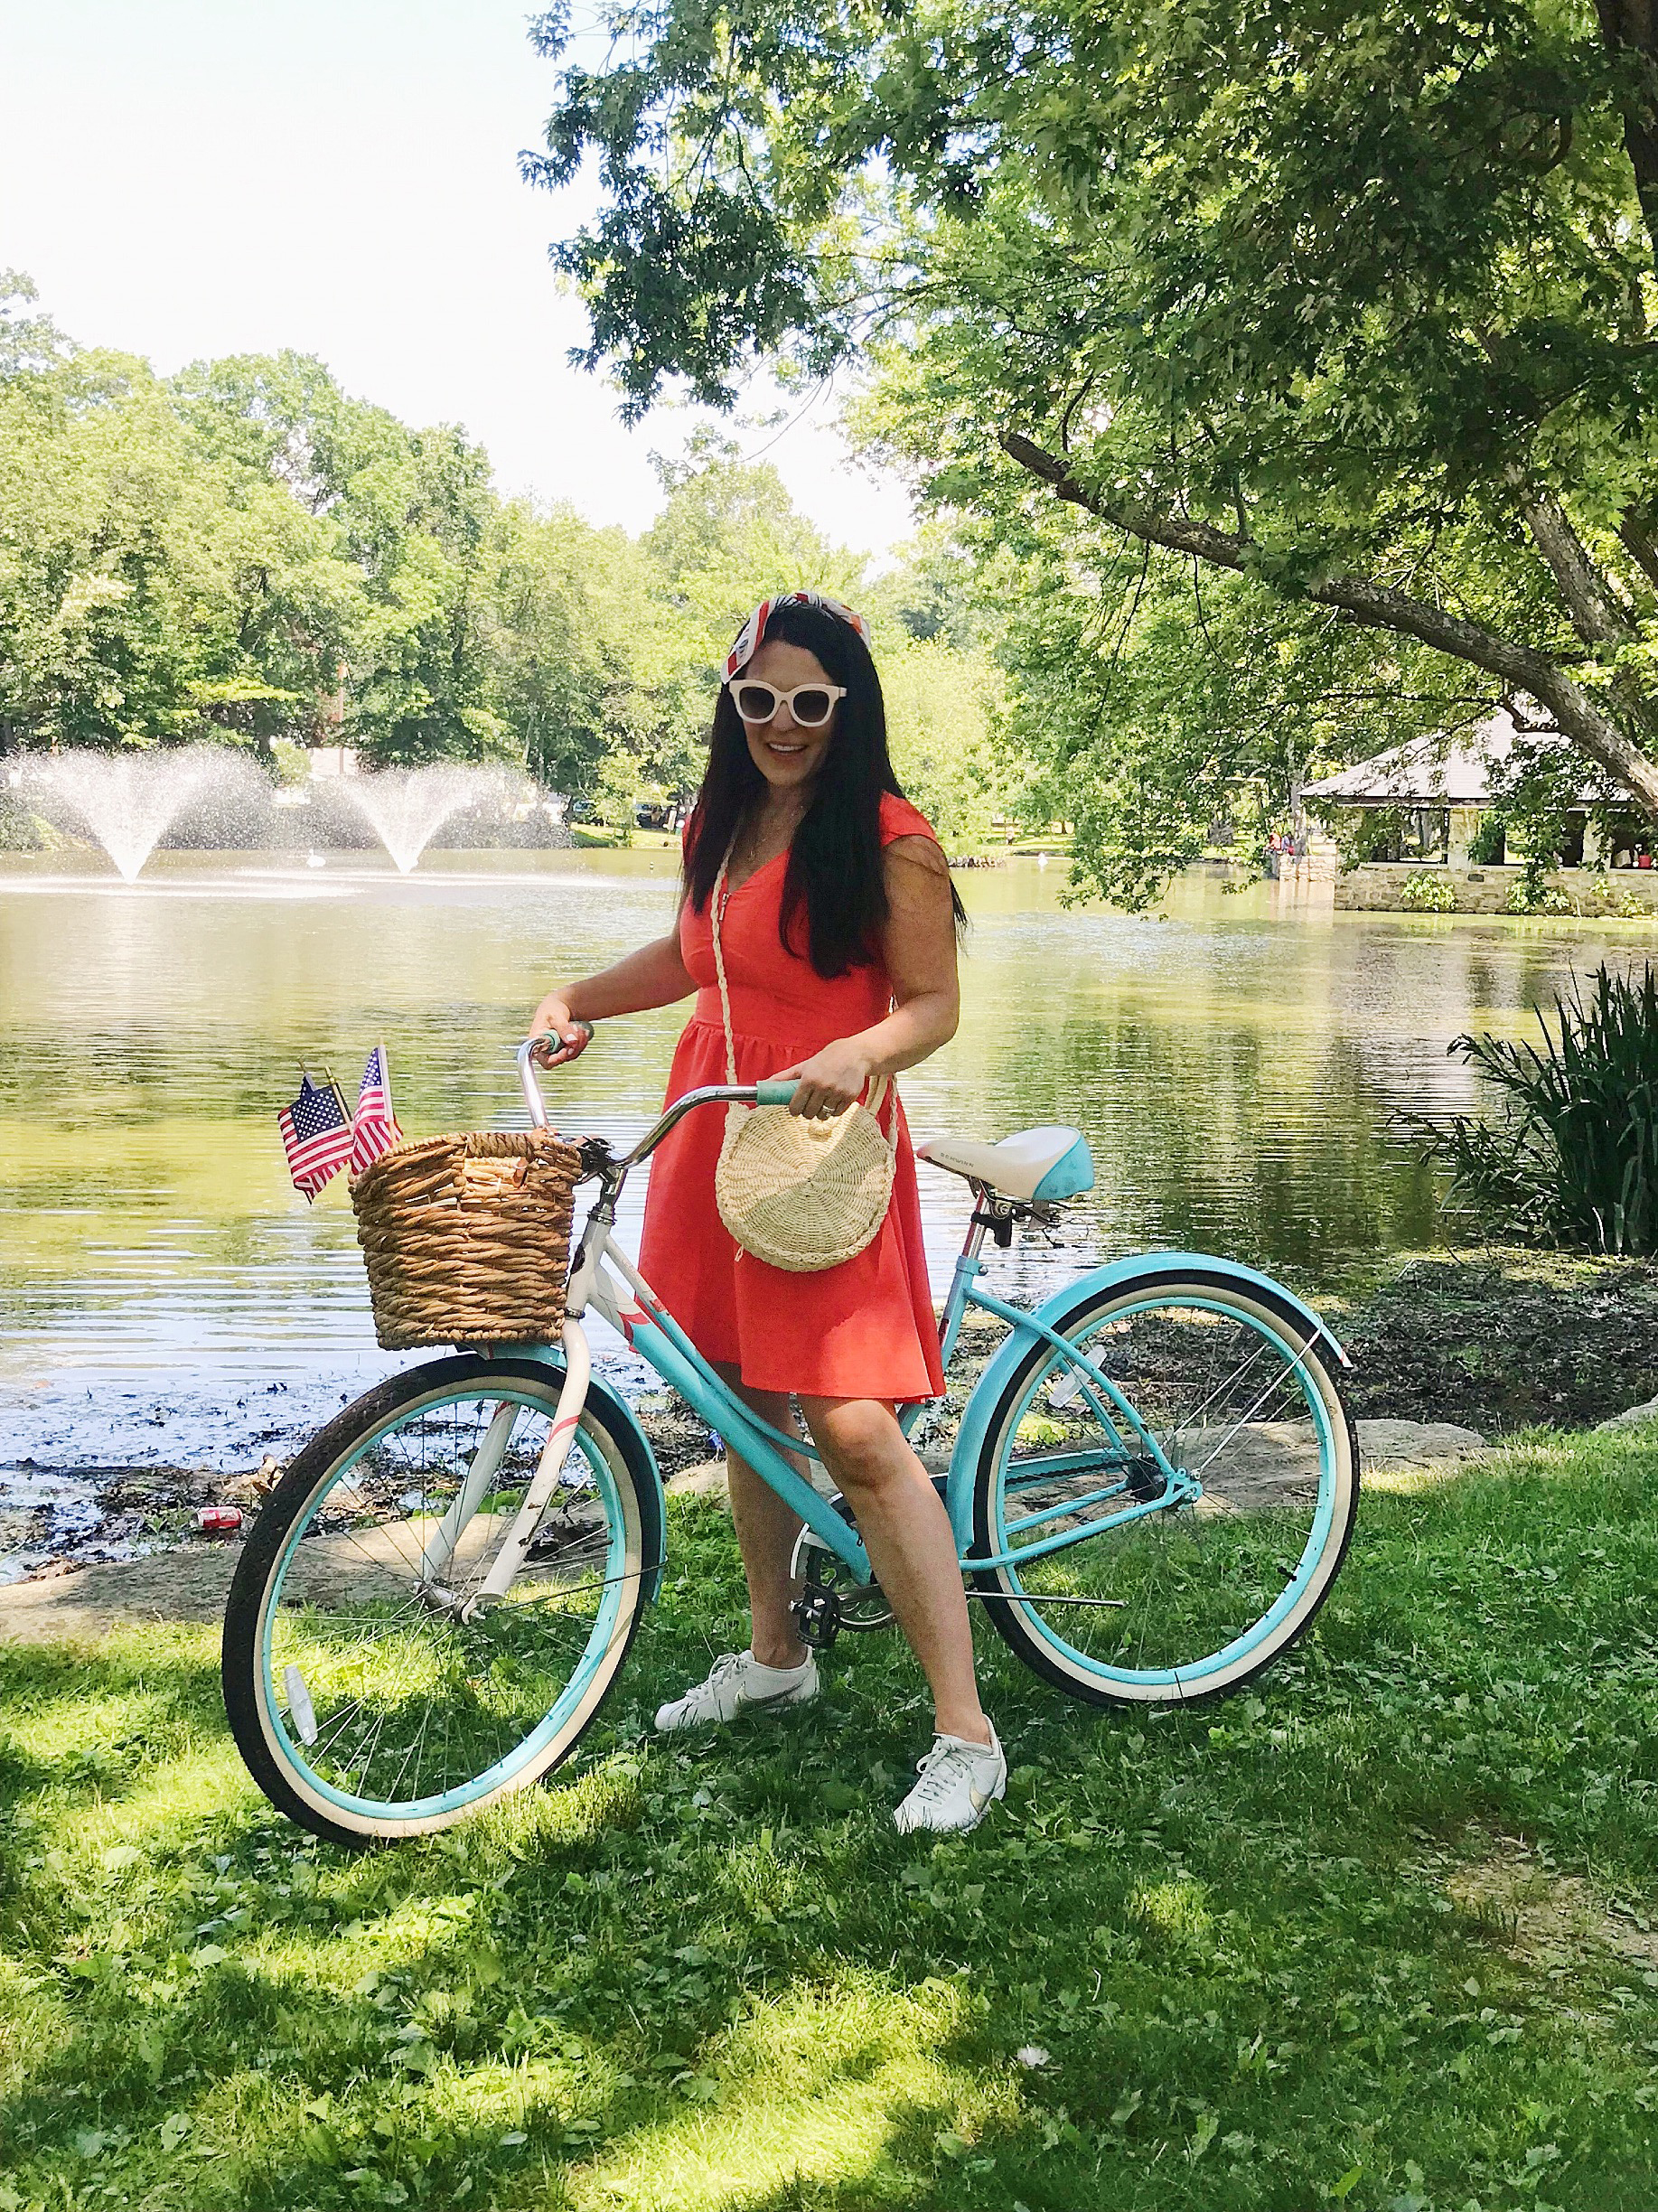 4th of July Outfit , fourth of July, red white and blue outfit, red dress, summer dress, patriotic dress, American flag, blue bike with basket|| Darling Darleen Top Lifestyle CT Blogger  #4thofjuly #fourthofjuly